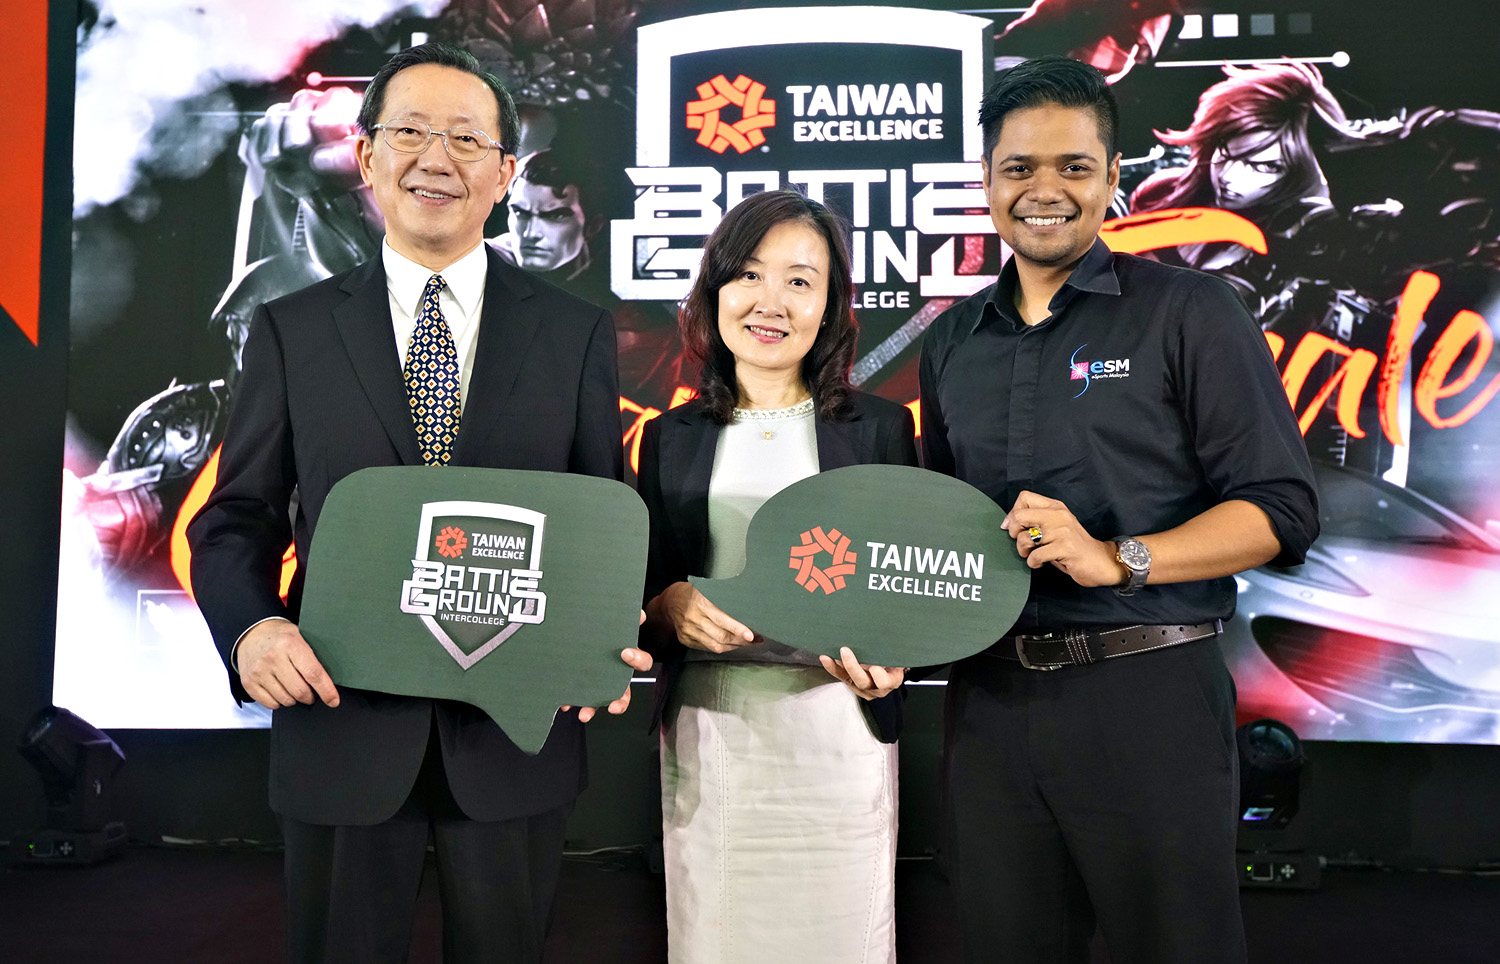 Taiwan Excellence Intercollege Battleground 2018